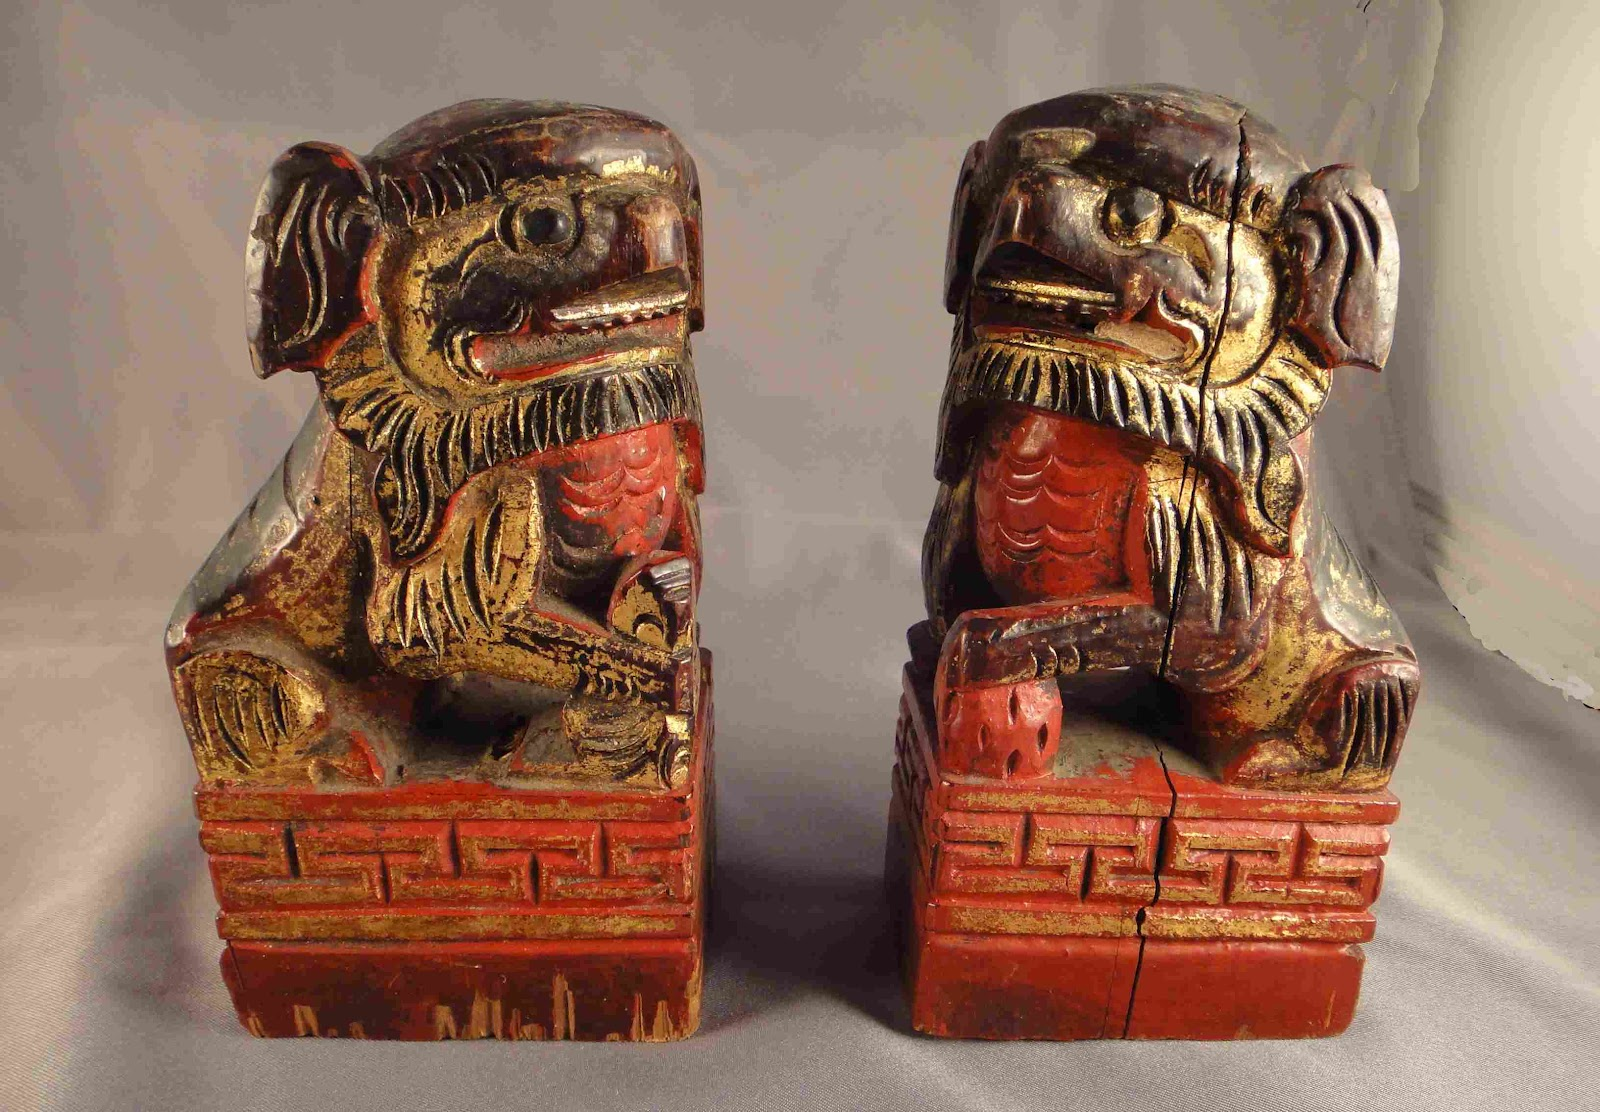 Roadtoparnassus chinese meander or greek key patterns one lion is playing with a ball the other presumably a female is protecting a child but both are resting on key bordered plinths buycottarizona Choice Image